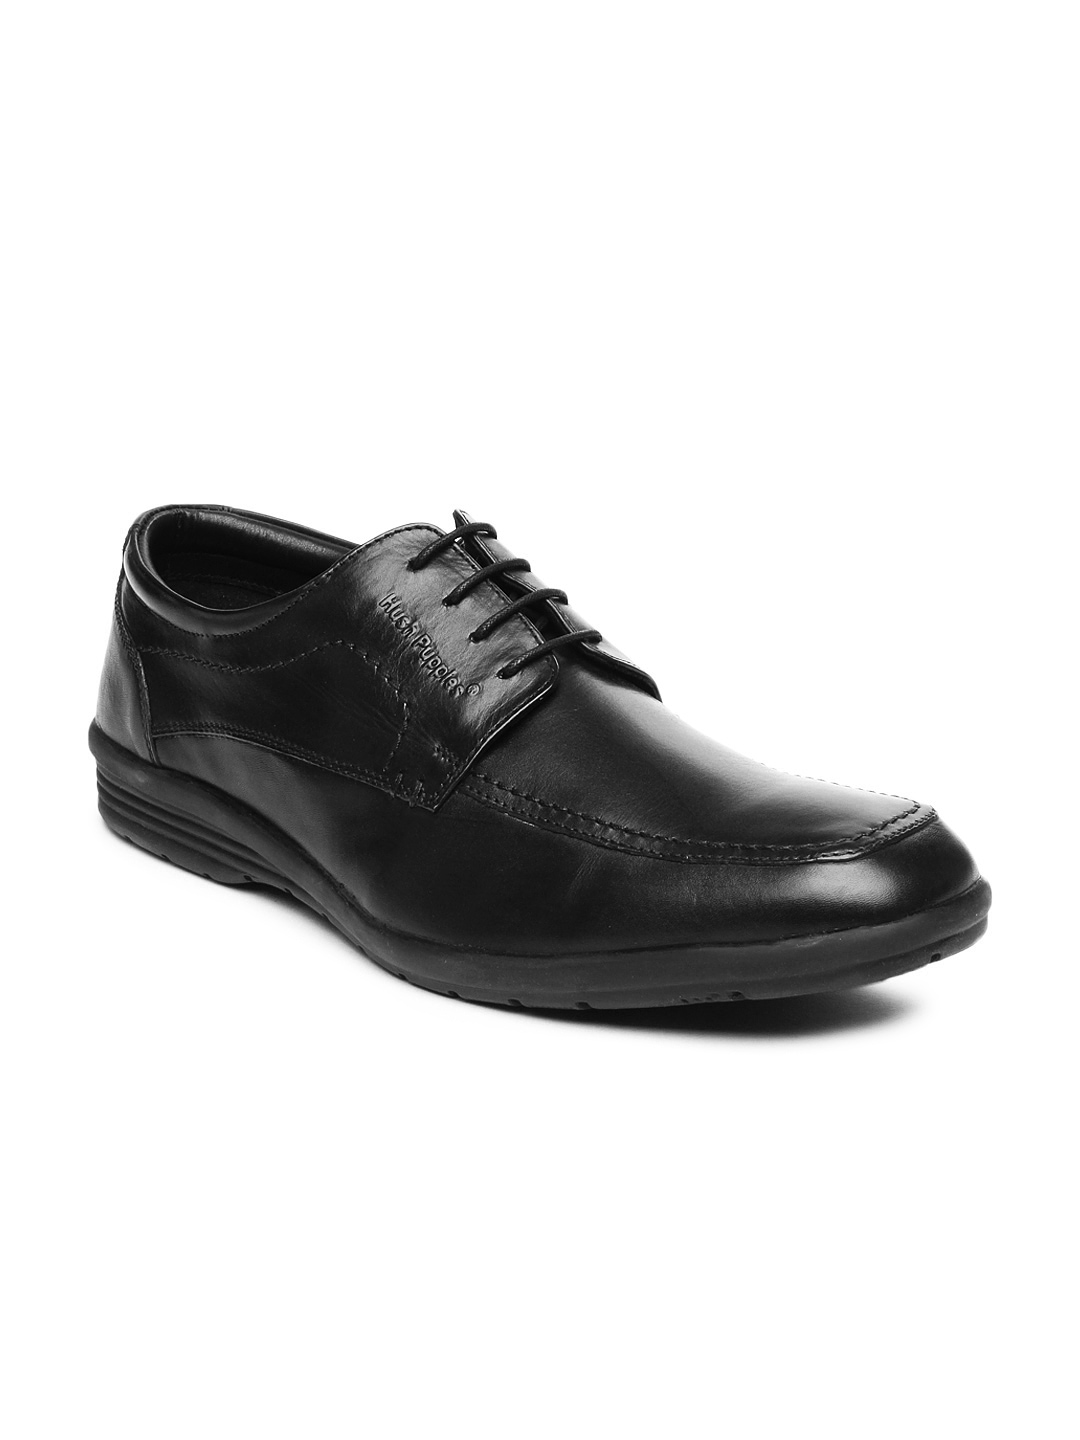 myntra hush puppies black leather semi formal shoes